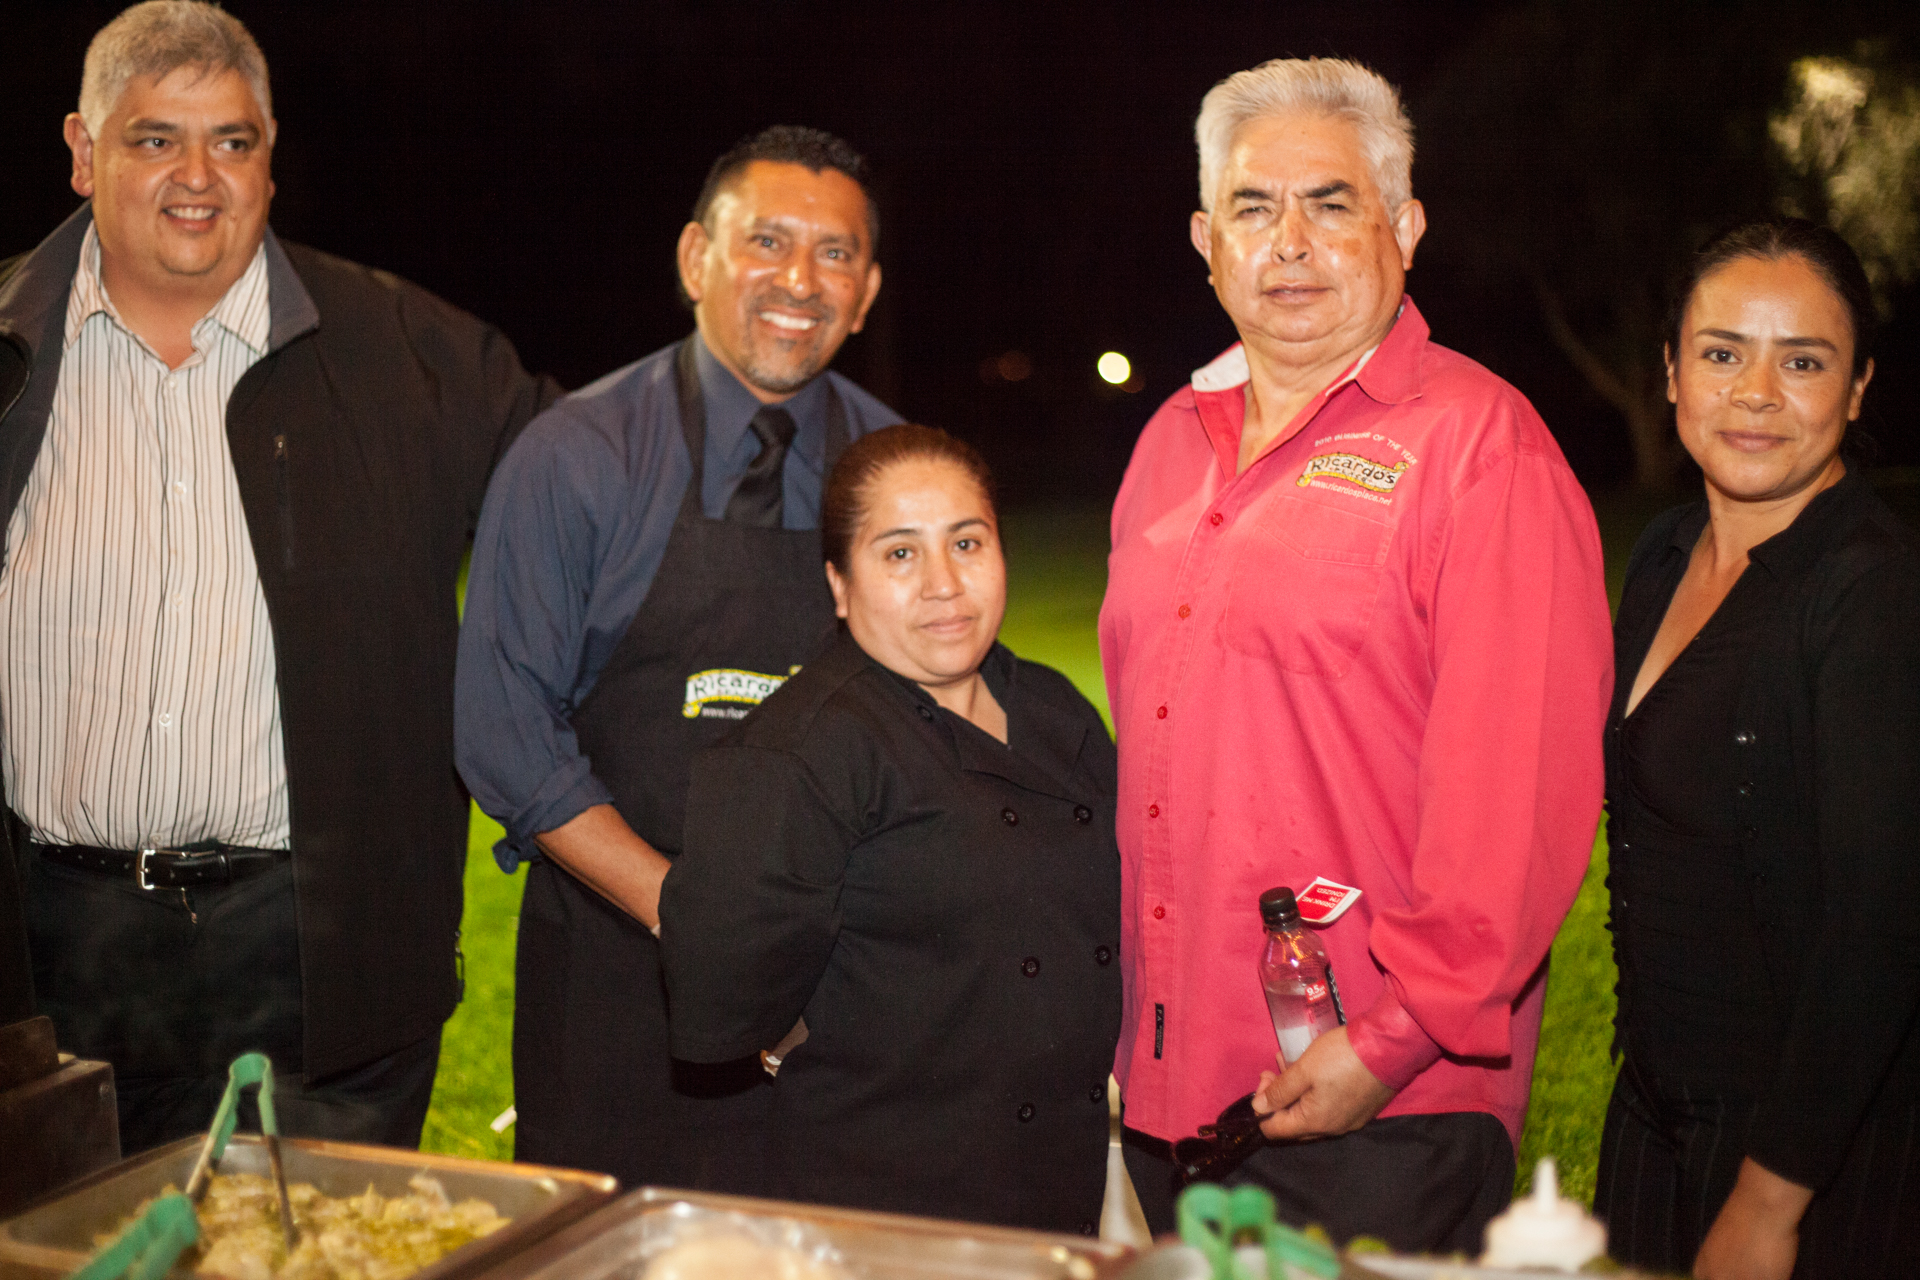 (Left to Right) From Ricardo's Place, Alex Beas; cook Juan Vilchez; waitress Angelica Rojas; owner Ricardo Beas; and waitress Laticia Cruz. Photo: Alex Paris